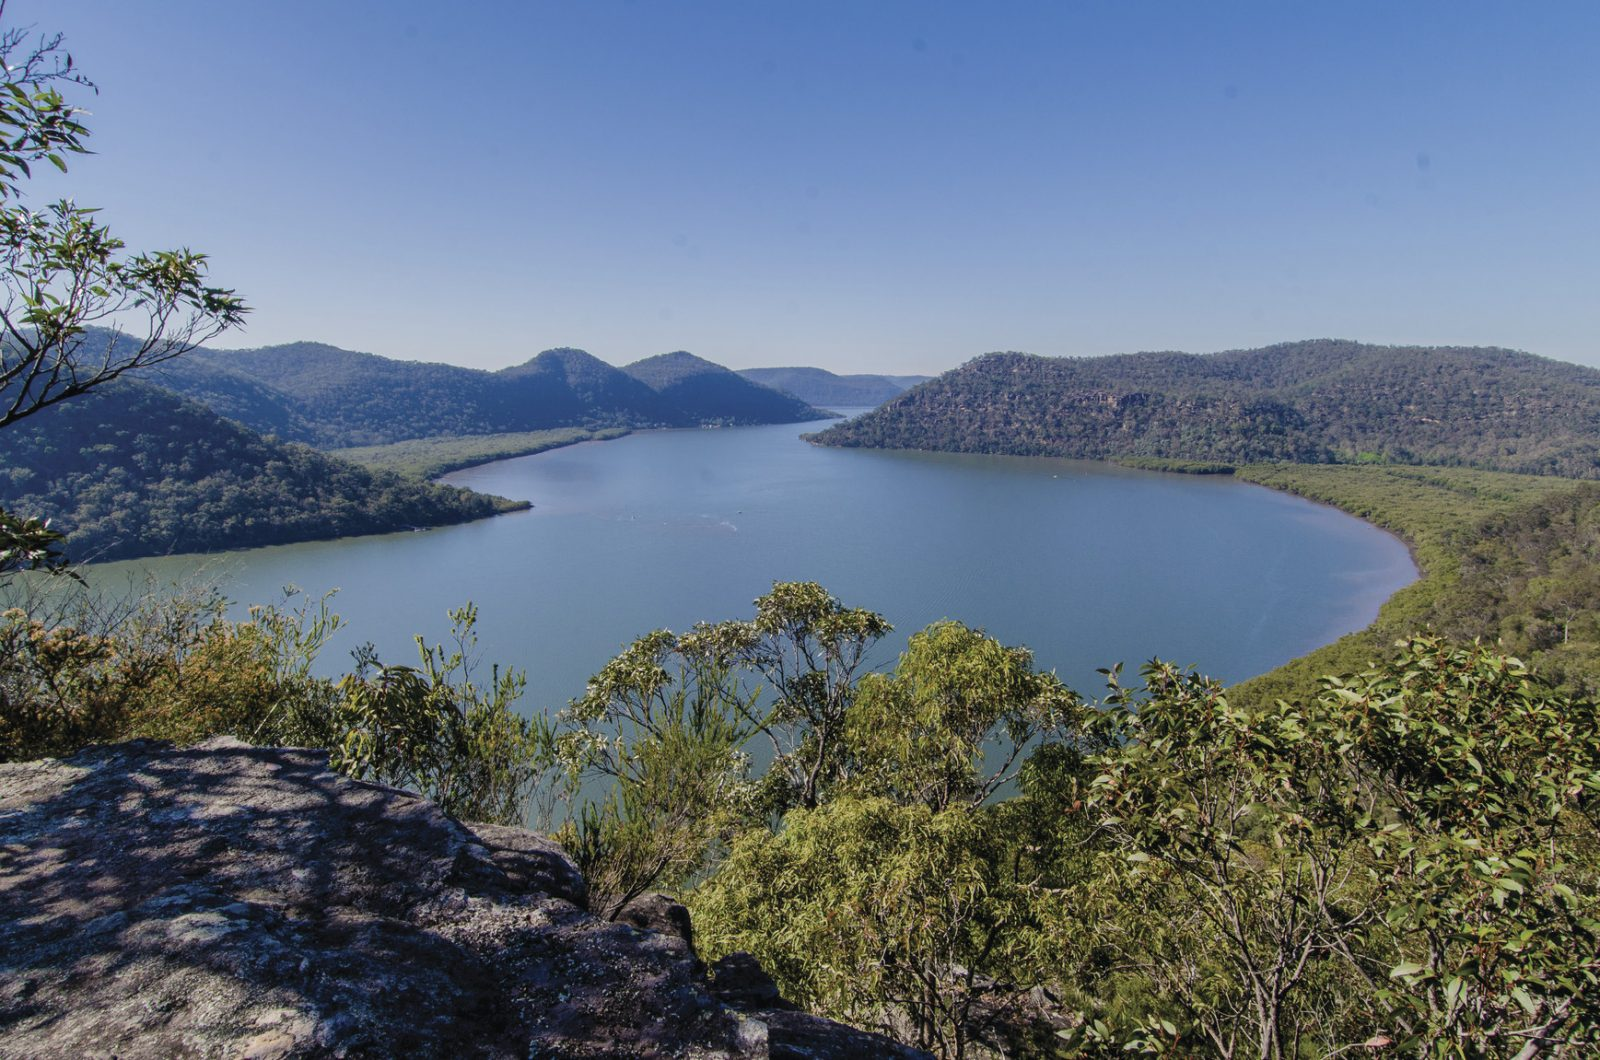 View down to the winding Hawkesbury River from Marramarra National Park. Photo: John Spencer/OEH